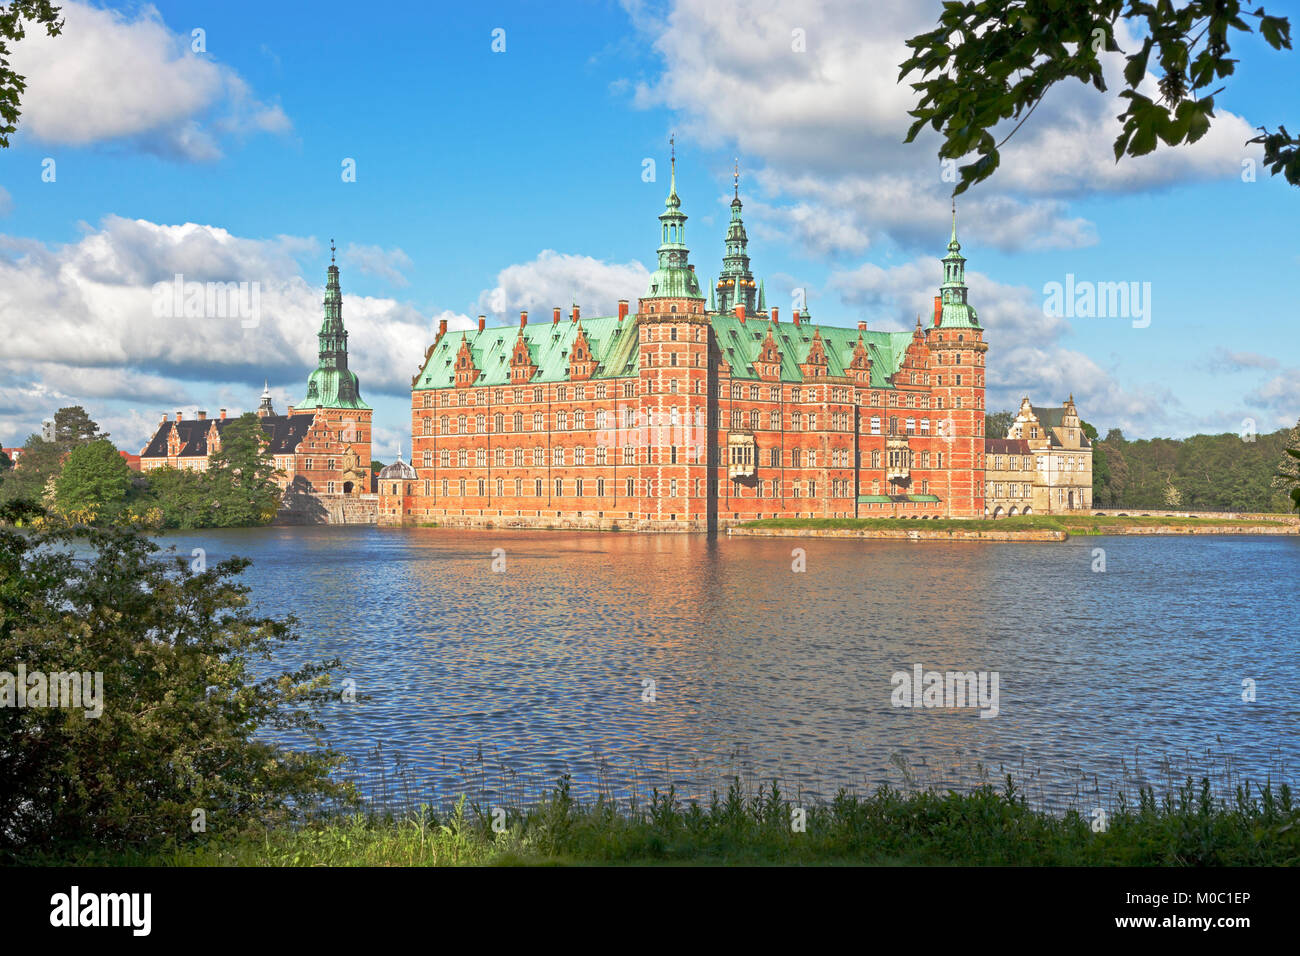 The Frederiksborg Castle in Dutch Renaissance style in Hillerød near Copenhagen, Denmark, in bright summer - Stock Image